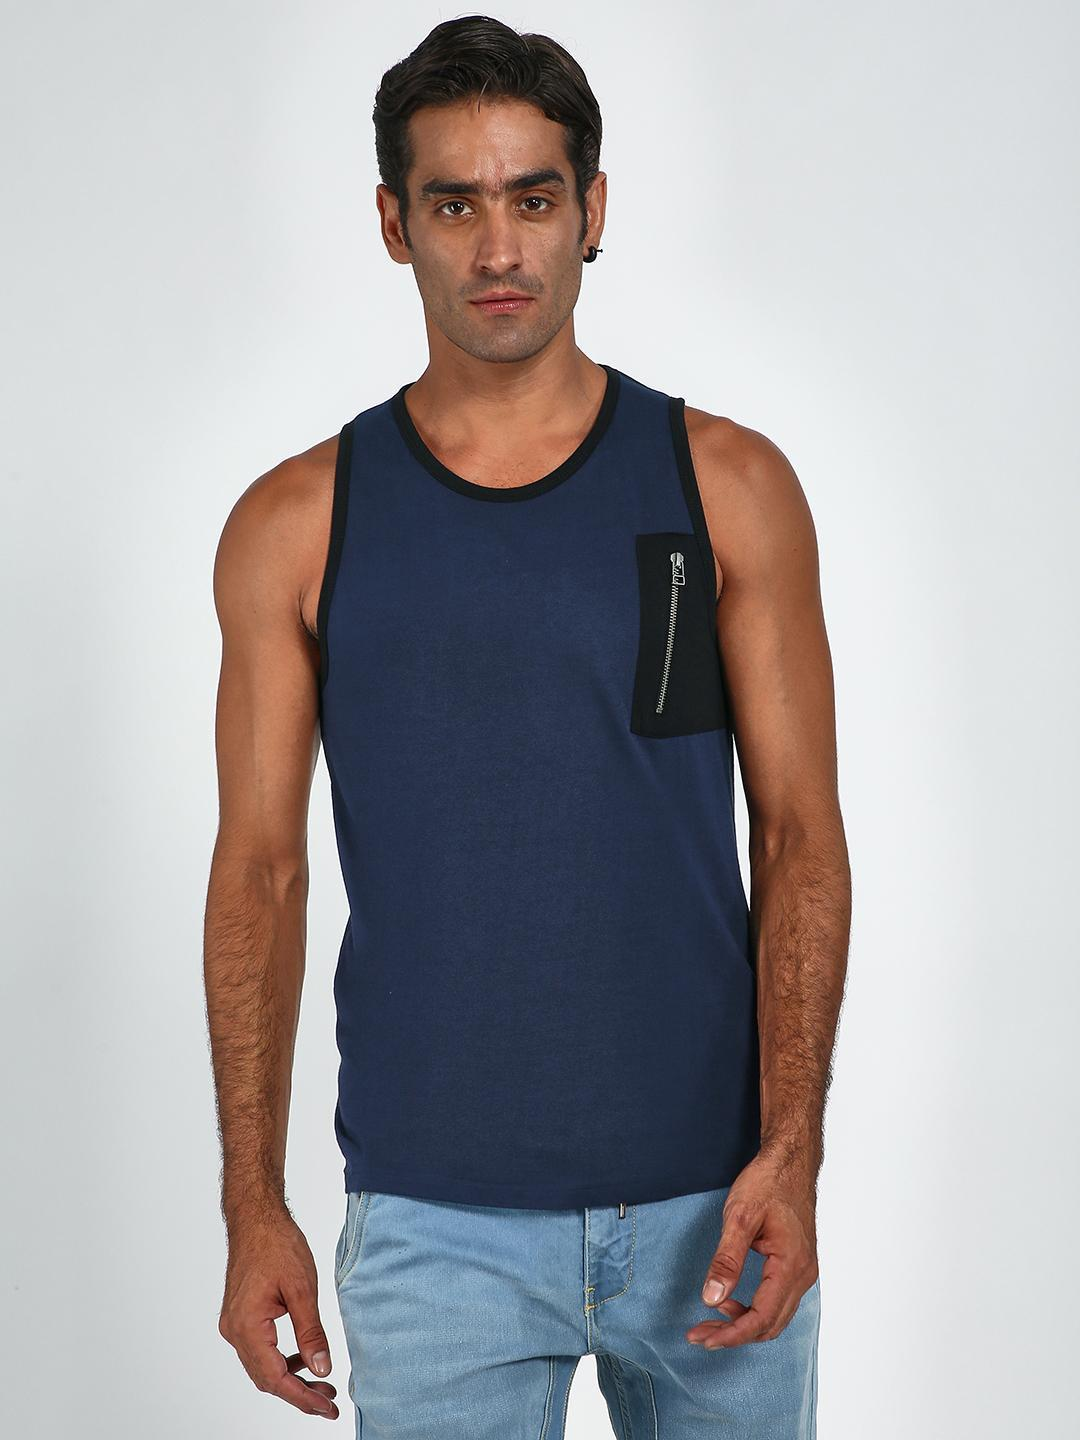 Blue Saint Navy Zipper Pocket Sleeveless Vest 1